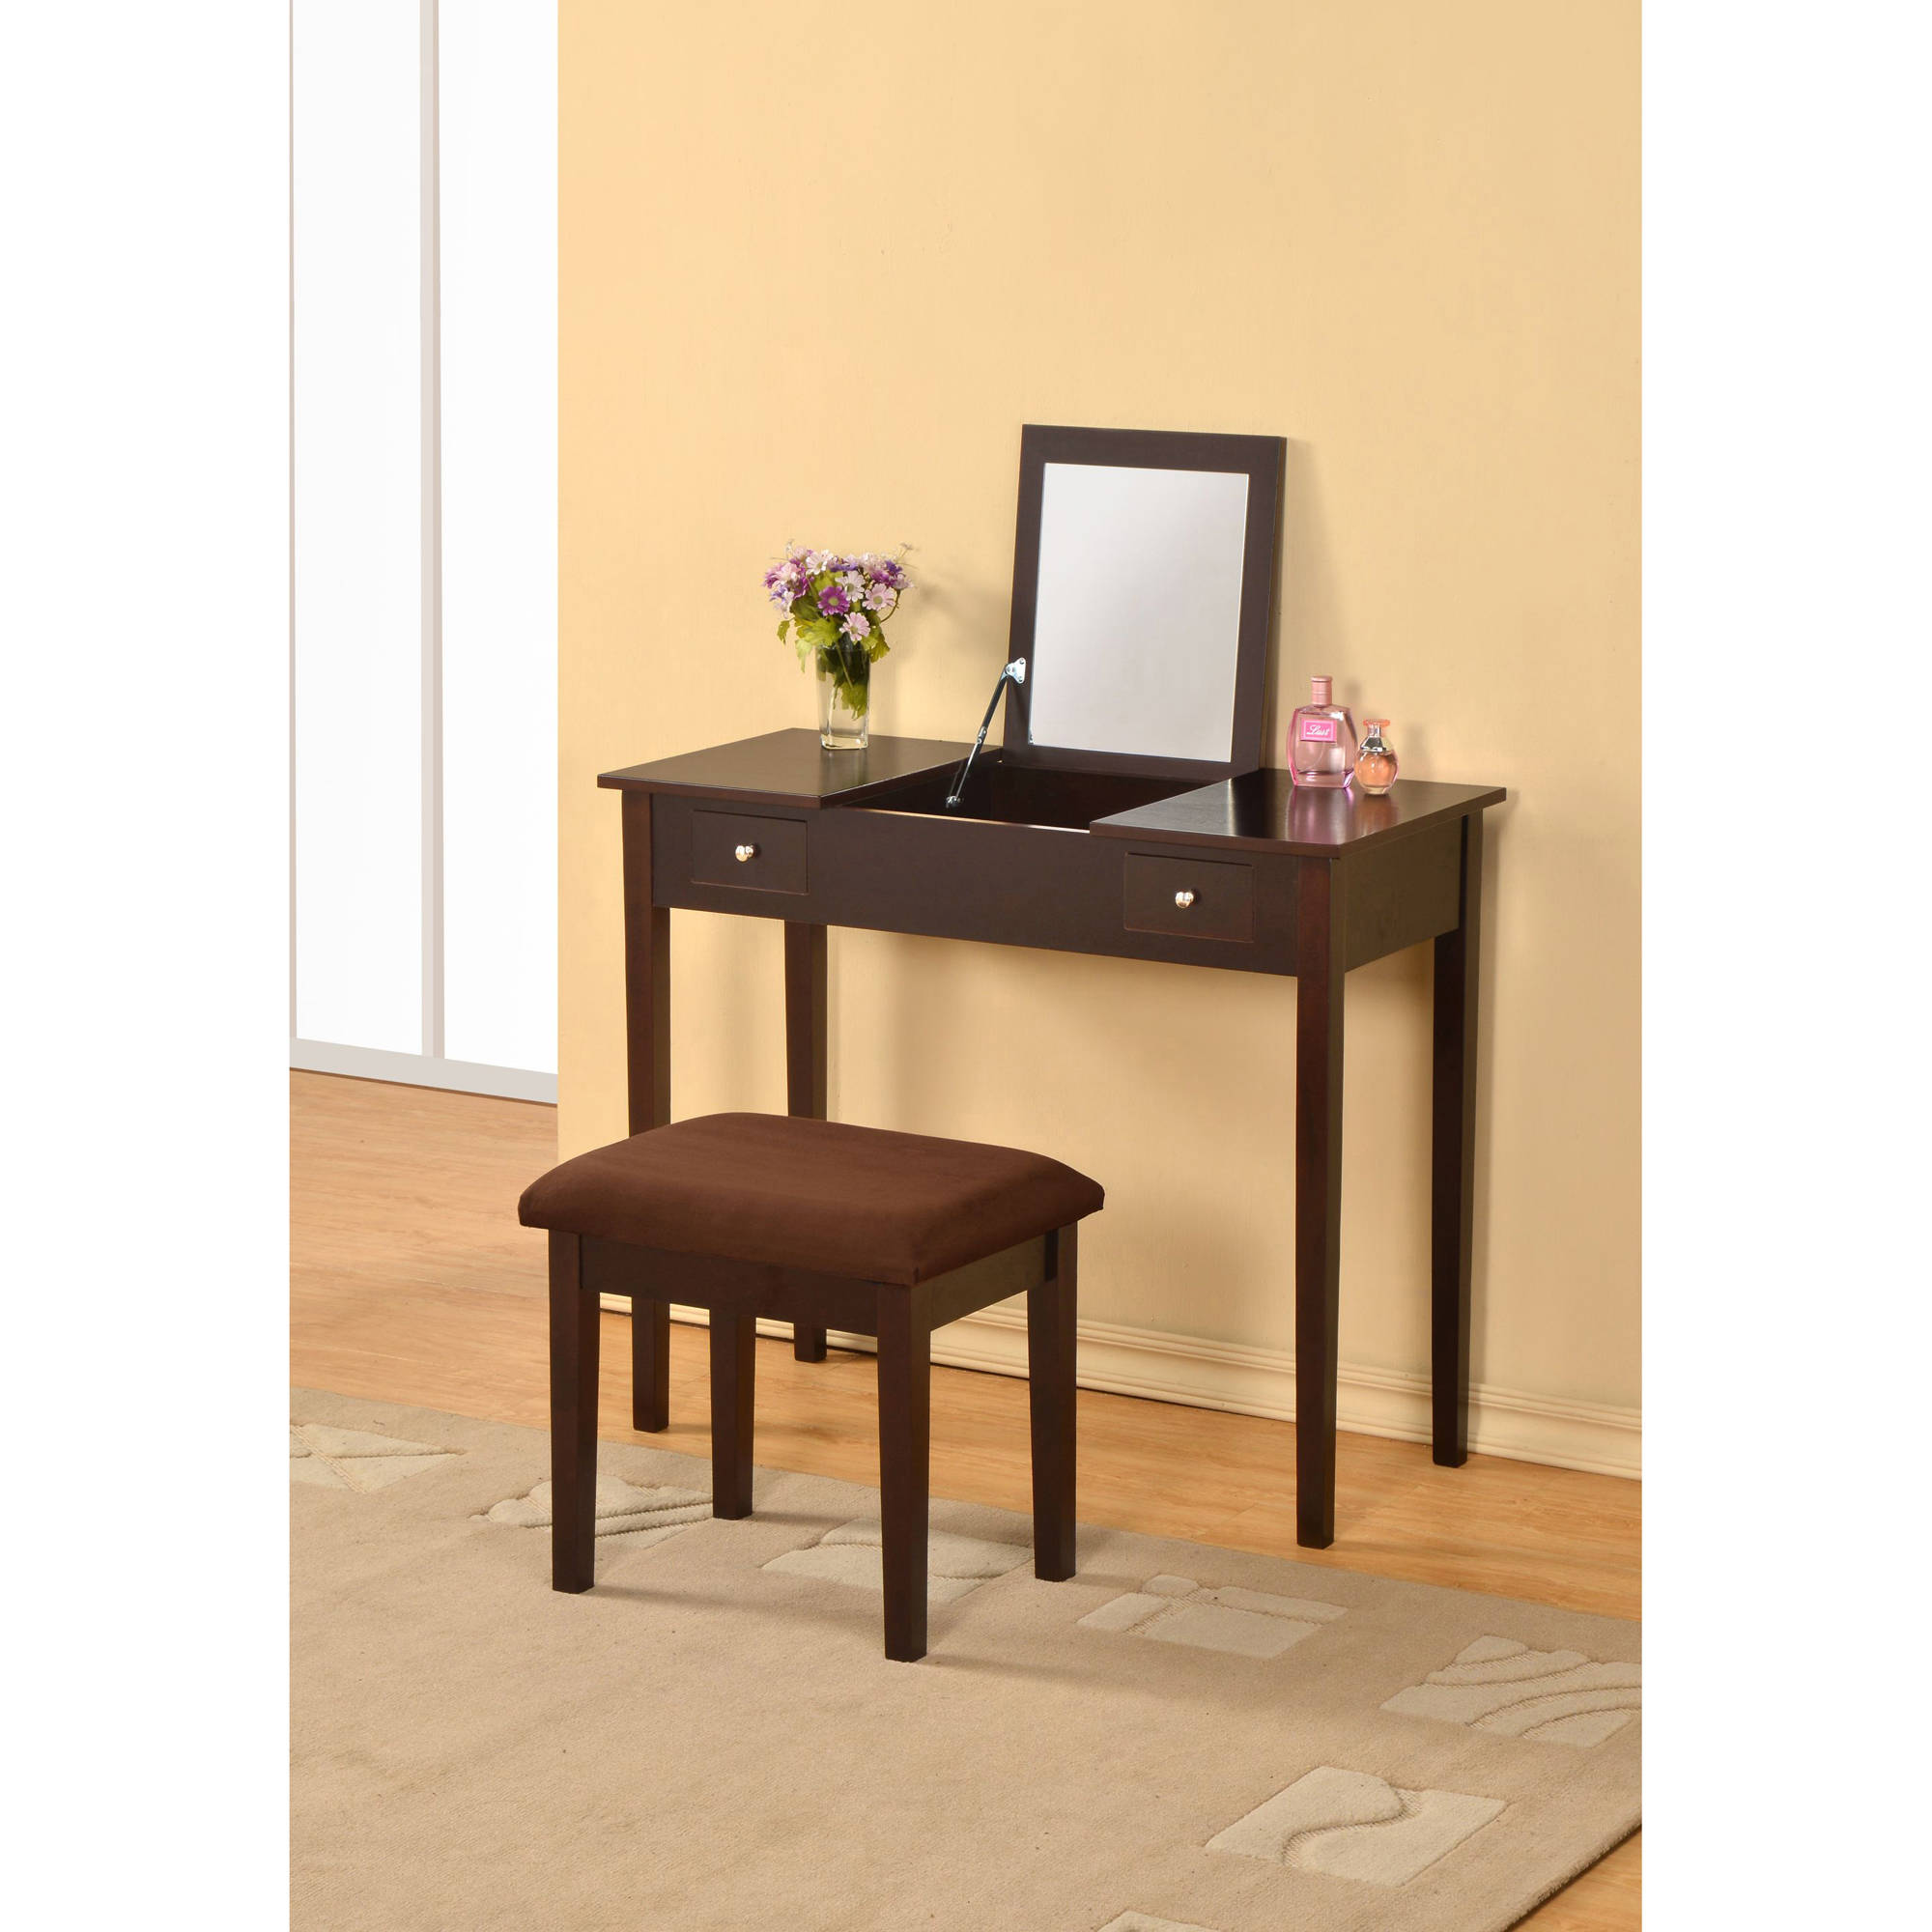 William's Home Furnishing Bodai Vanity, Multiple Colors